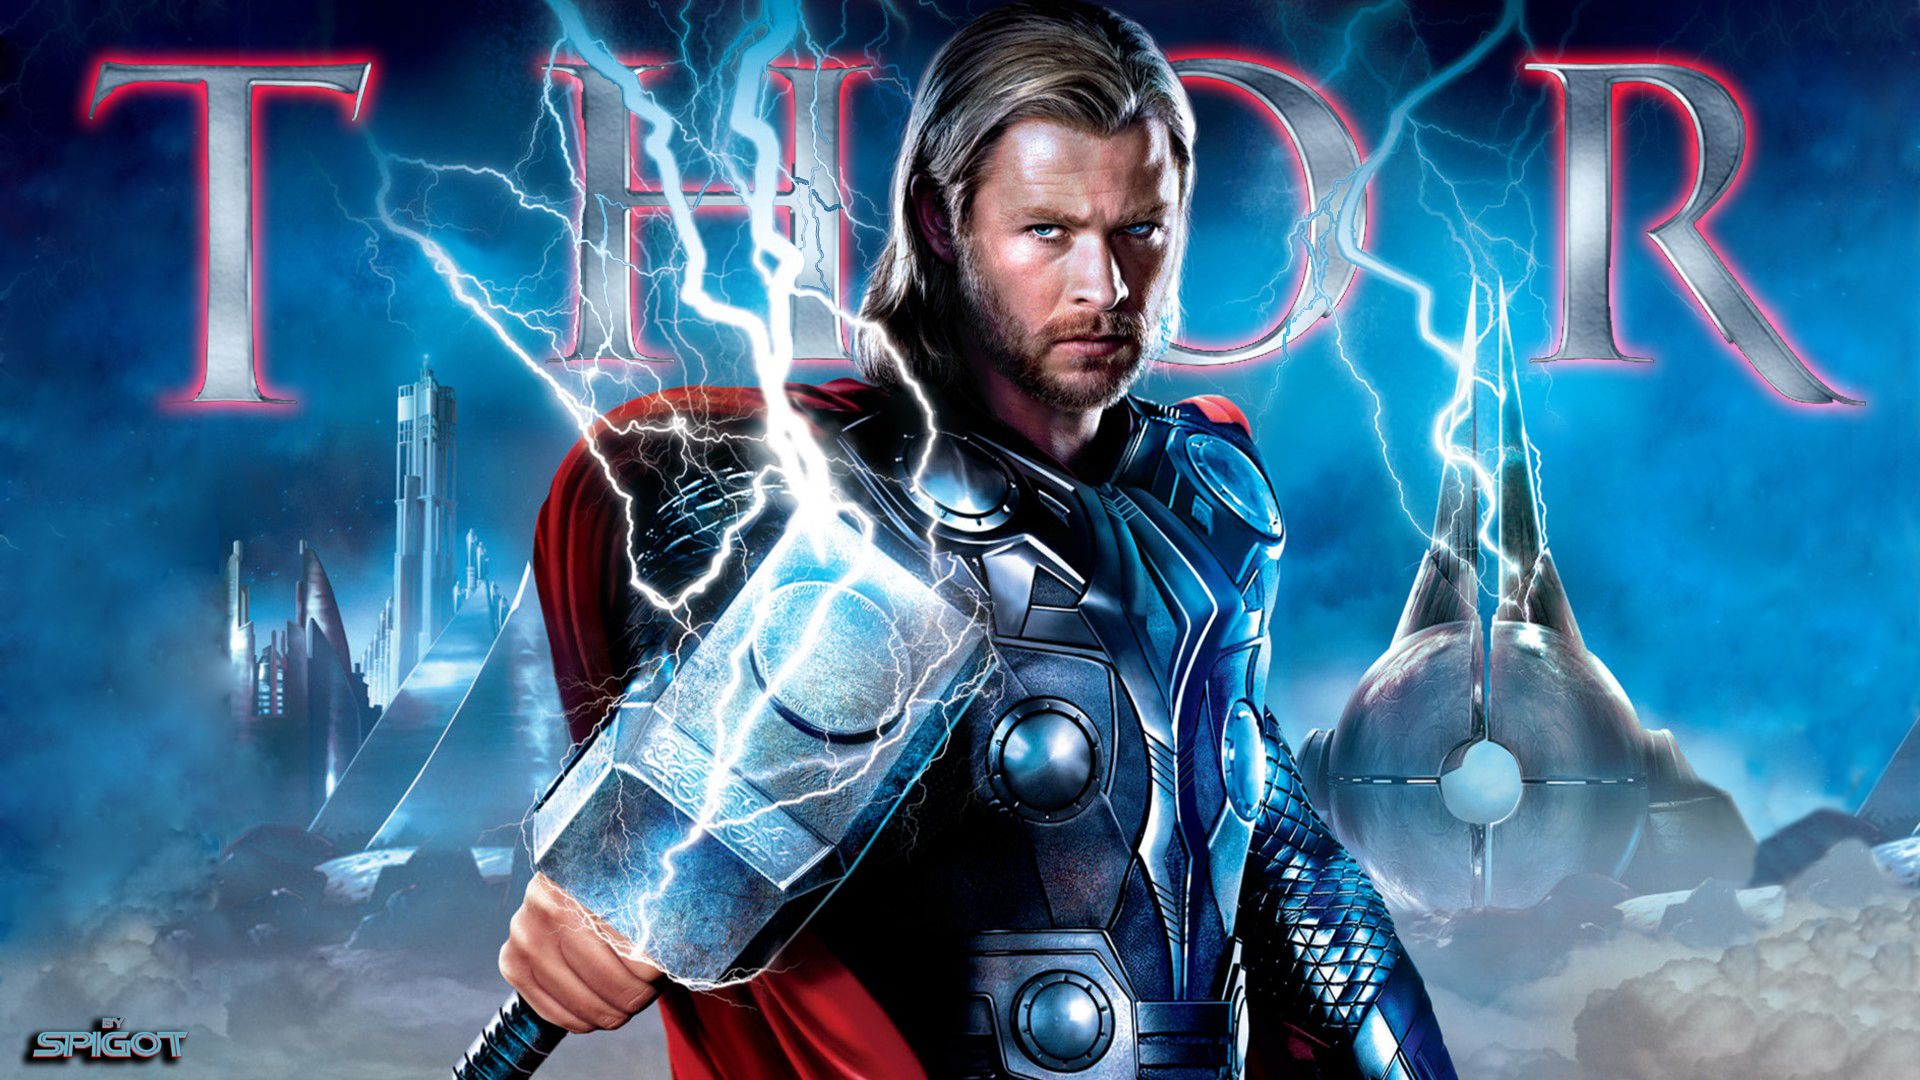 thor hd wallpapers 1080p